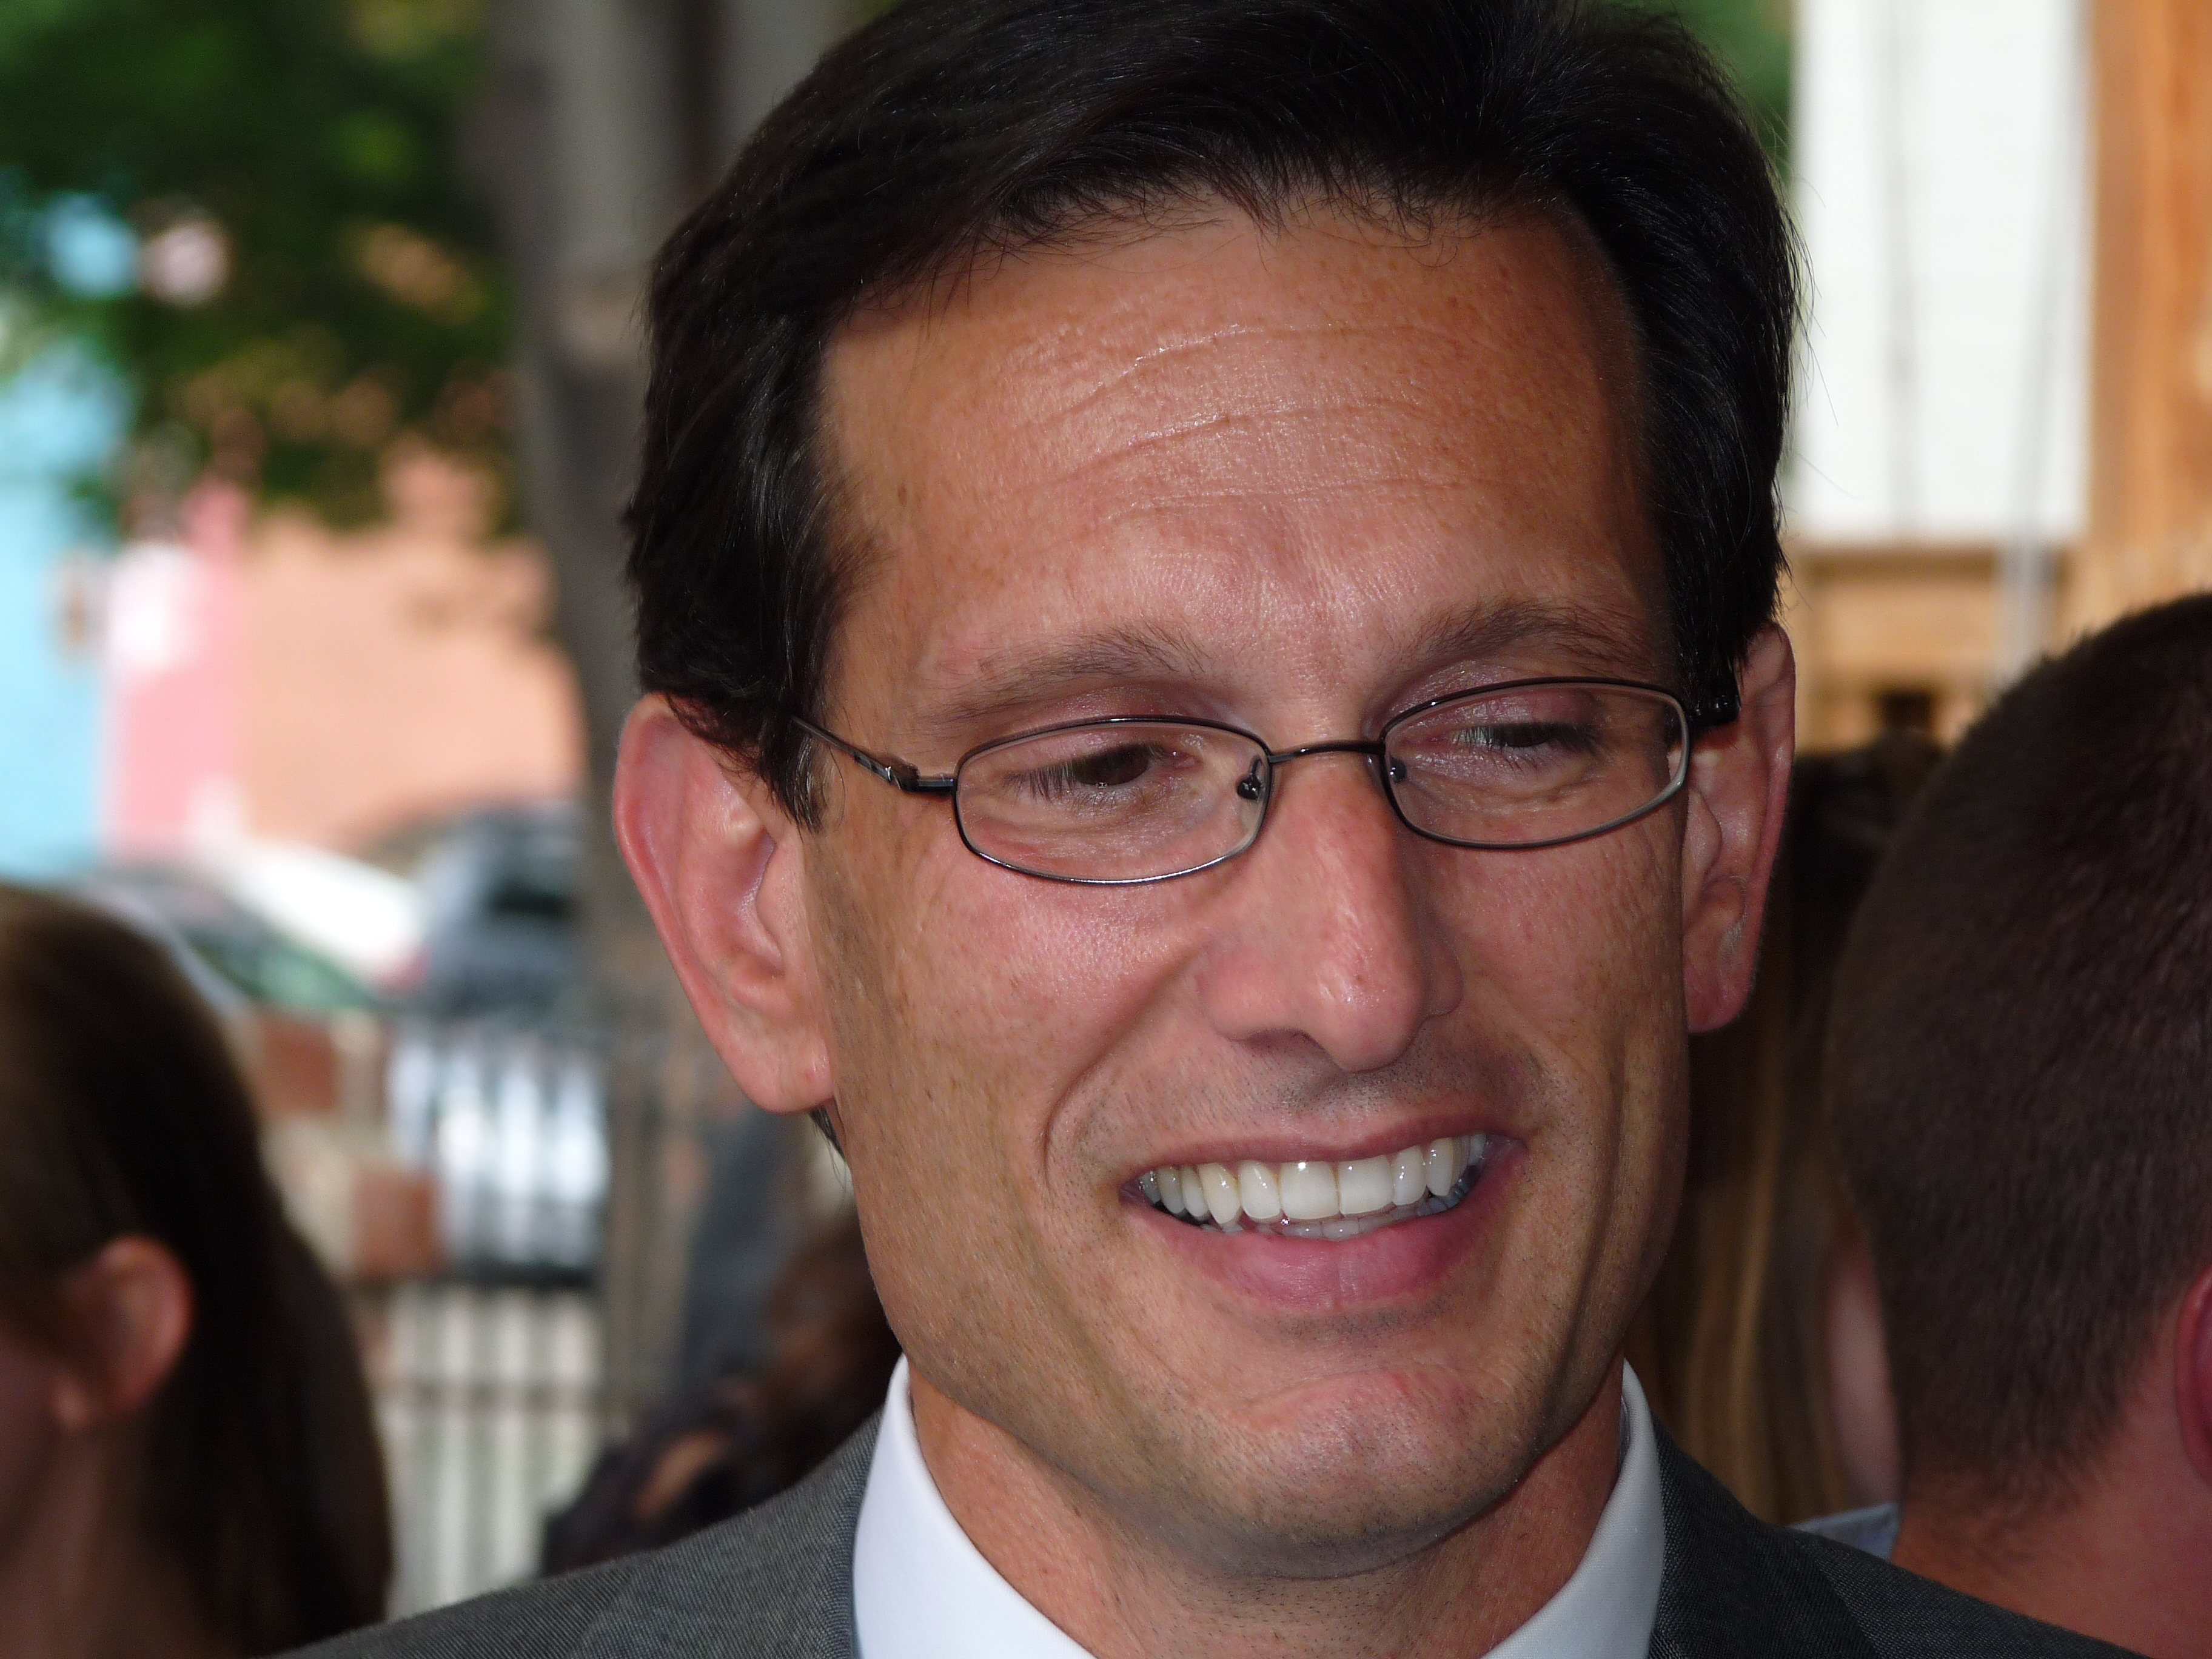 Virginia 7th District Congressman Eric Cantor